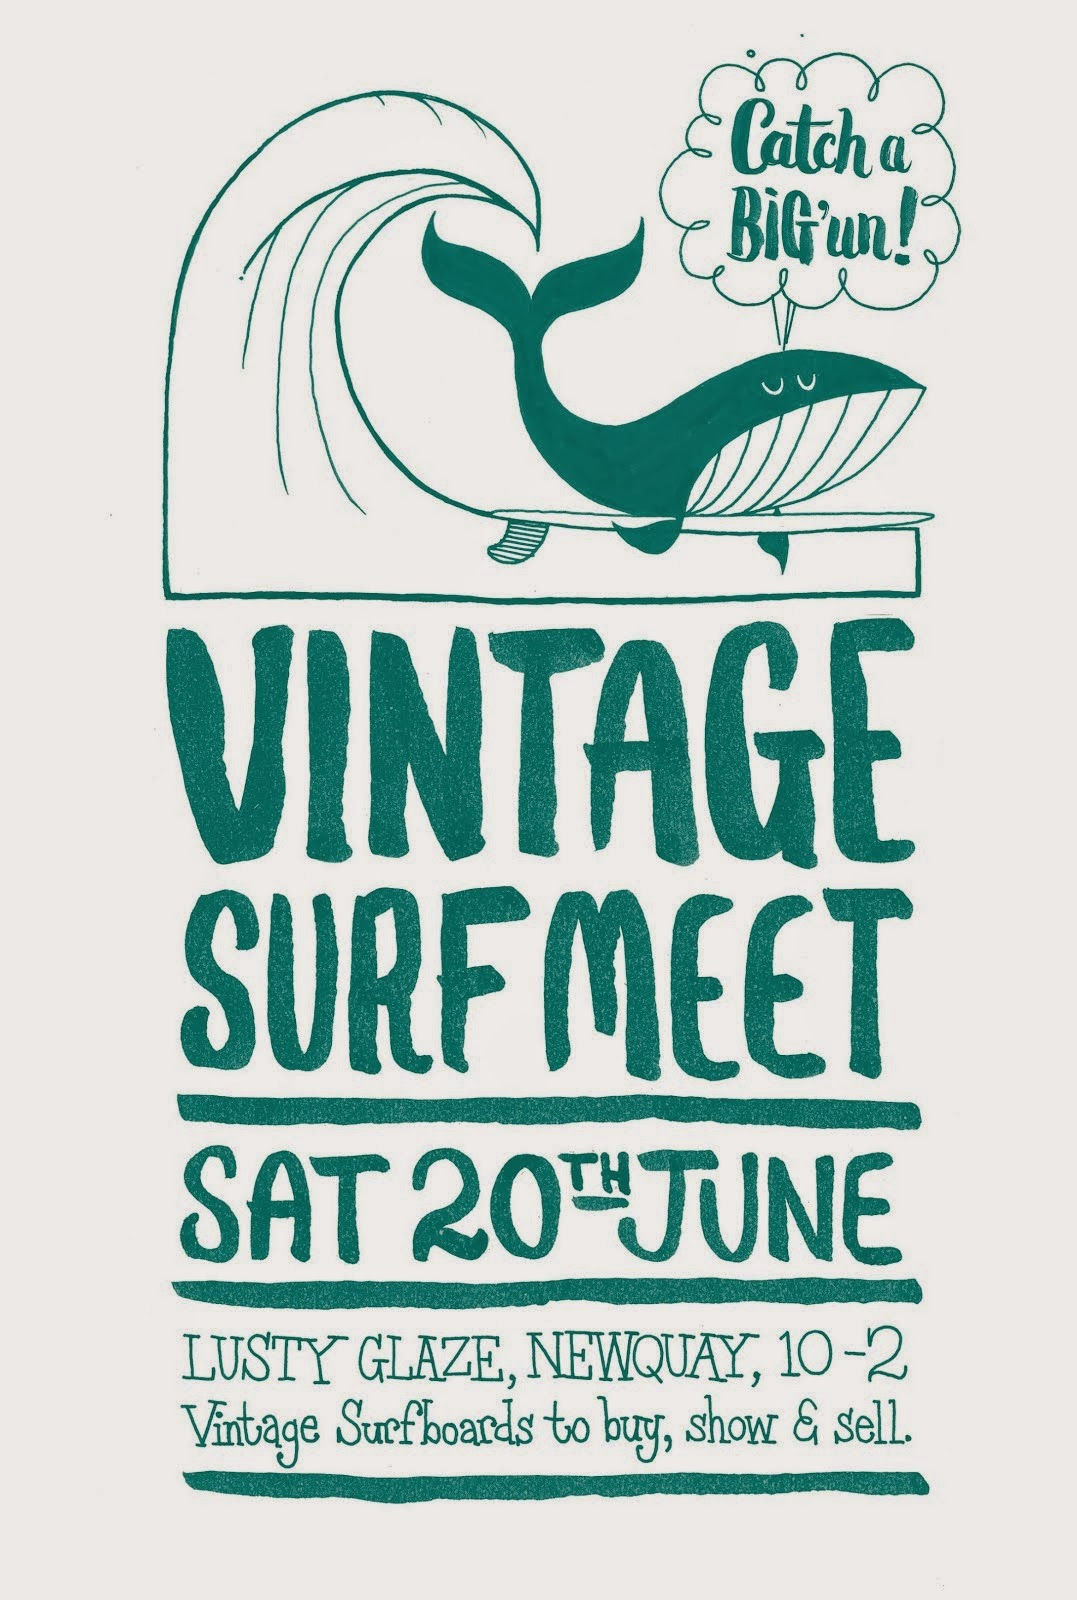 all welcome to this years surf meet, bring old boards, classic cars or just come and browse